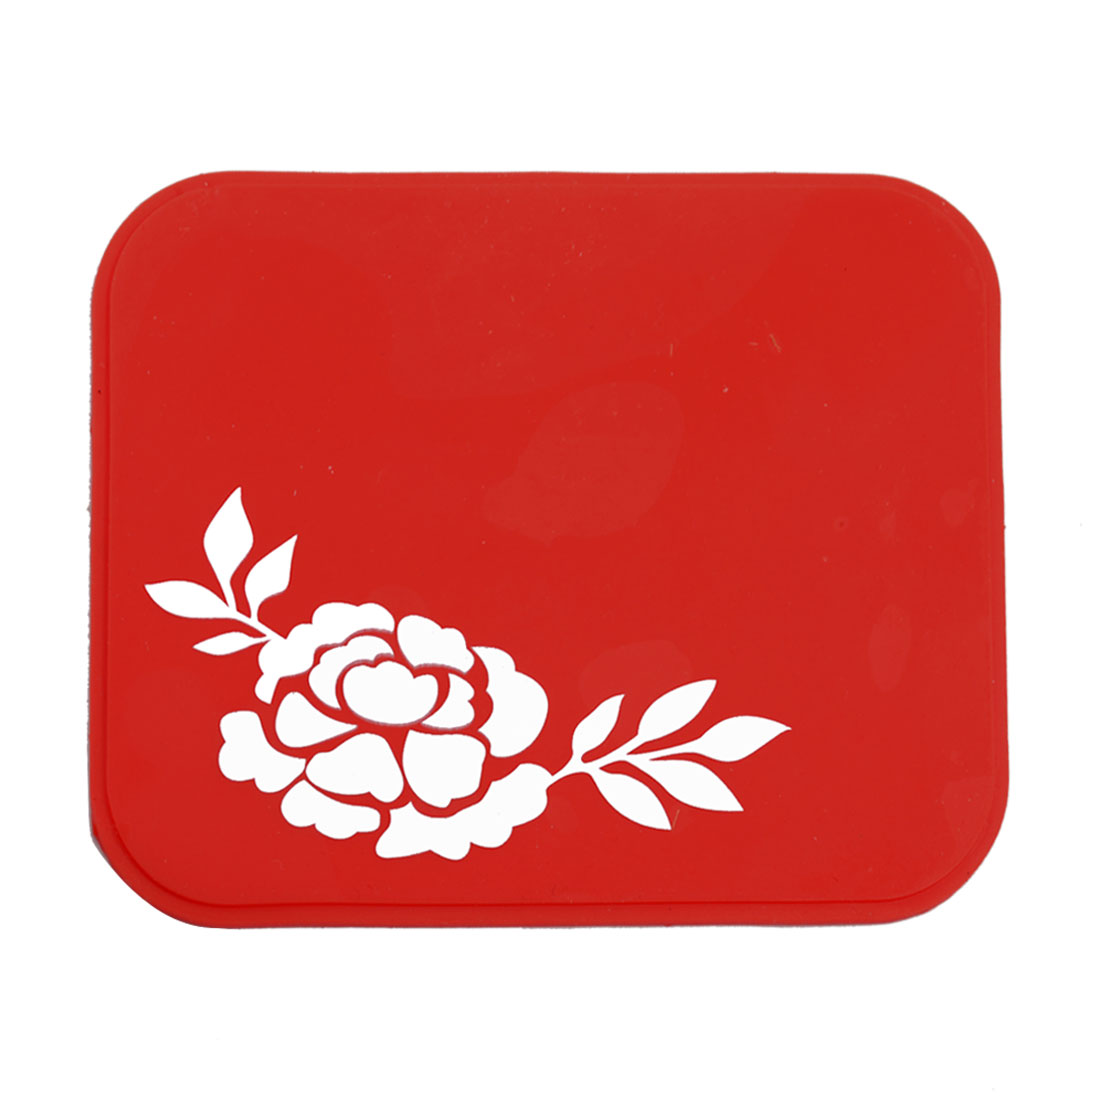 Flower Printed Silicone Gel Red Mobile Holder Anti-slip Pad Mat